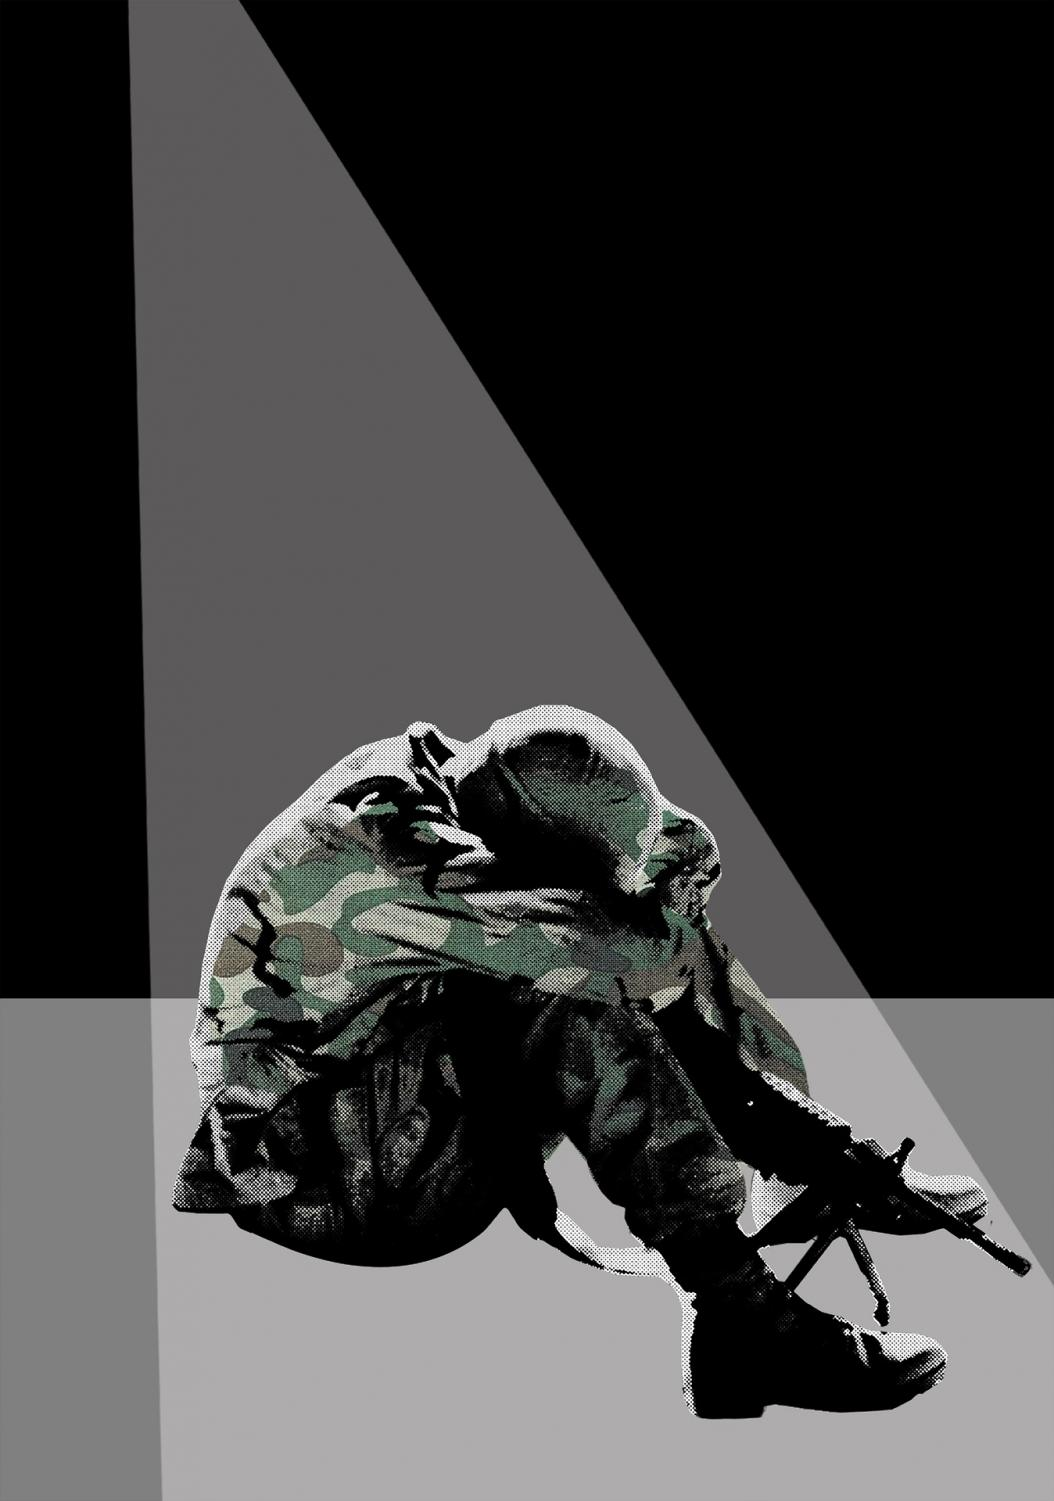 A soldier sits in isolation. While military post-traumatic stress disorder is commonly associated with experiences from war, military sexual trauma is also a leading cause of PTSD.